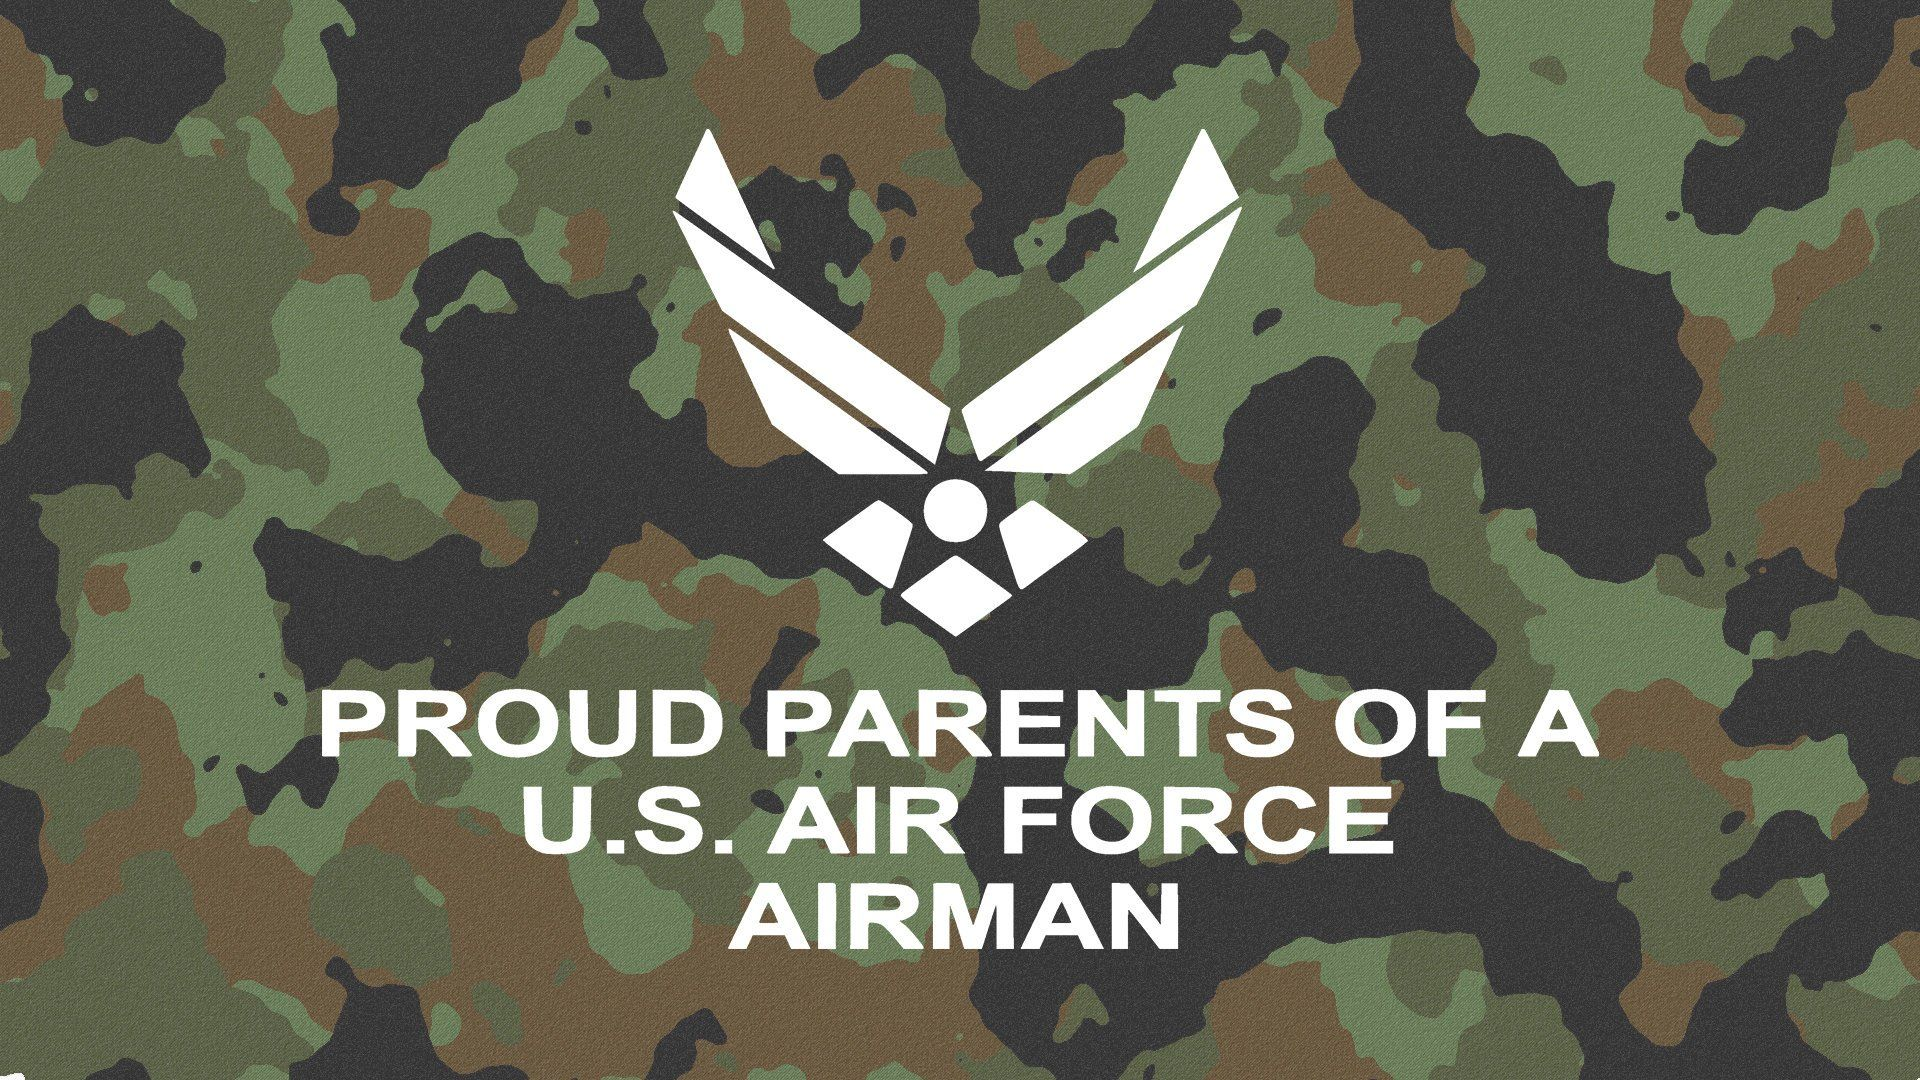 Proud Parents Of A U.S. Air Force Airman Decal Military